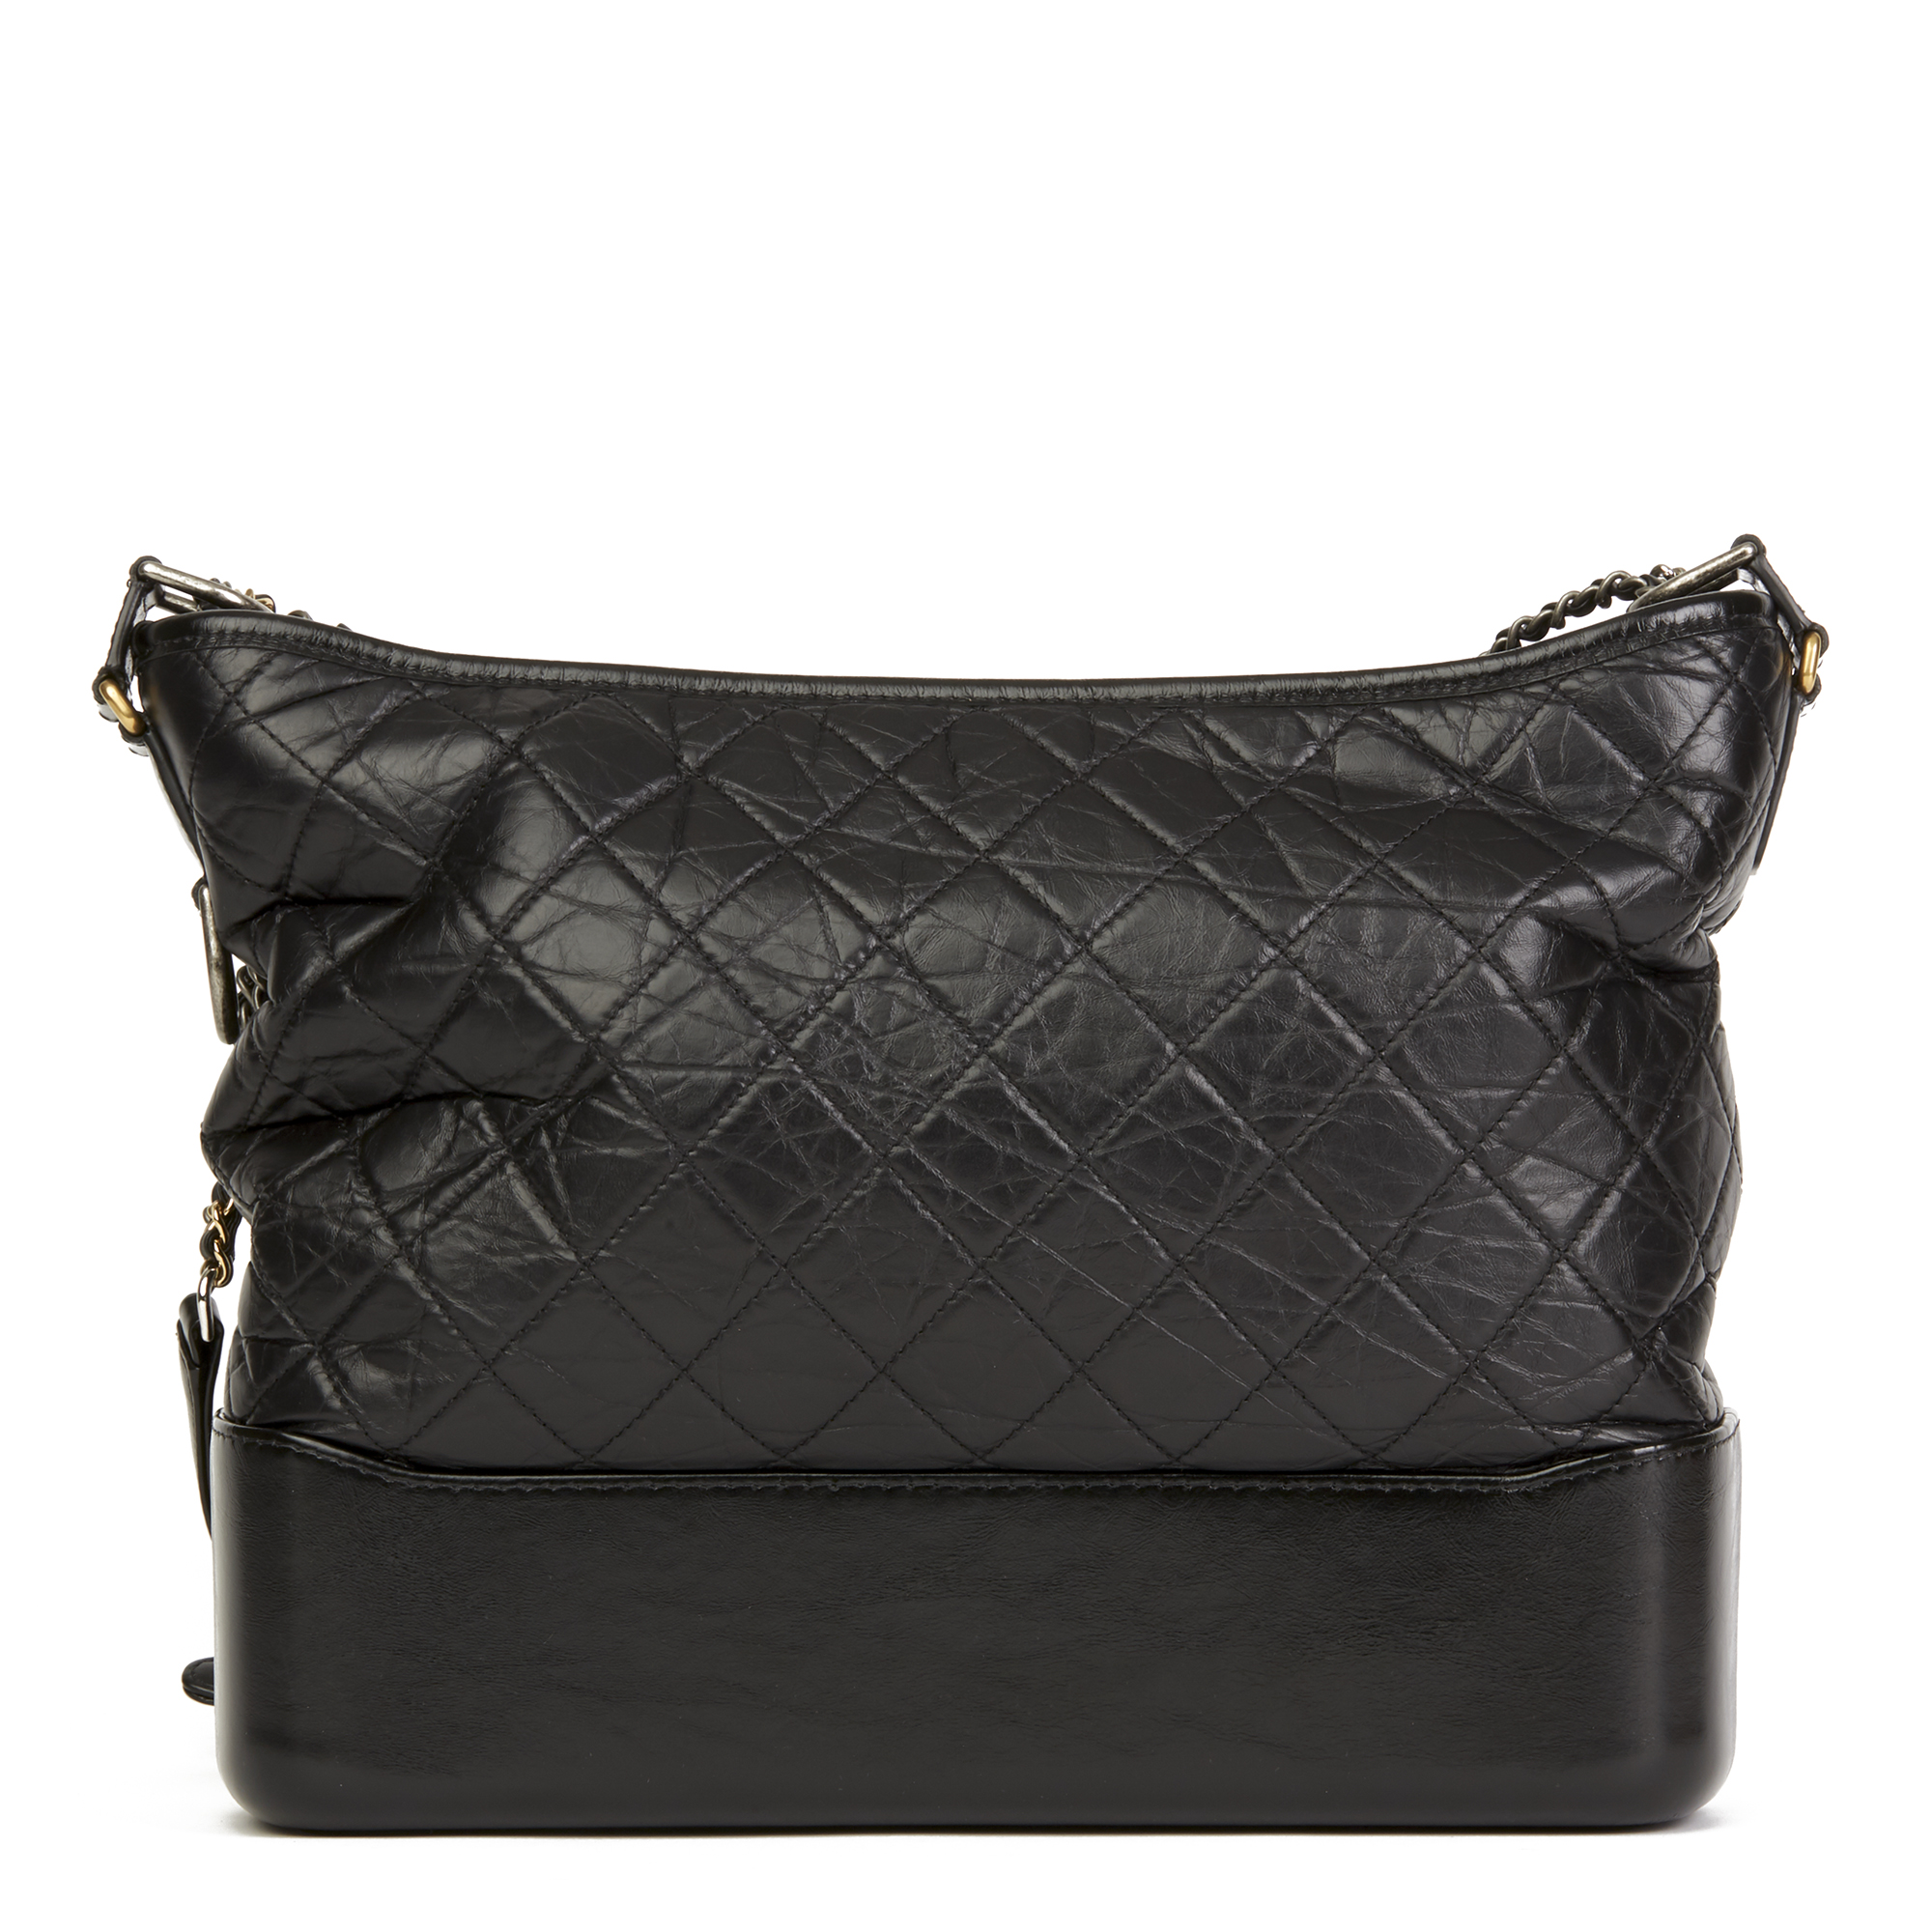 8baf65a171ce08 Details about CHANEL BLACK QUILTED AGED CALFSKIN LEATHER LARGE GABRIELLE  HOBO BAG HB2800